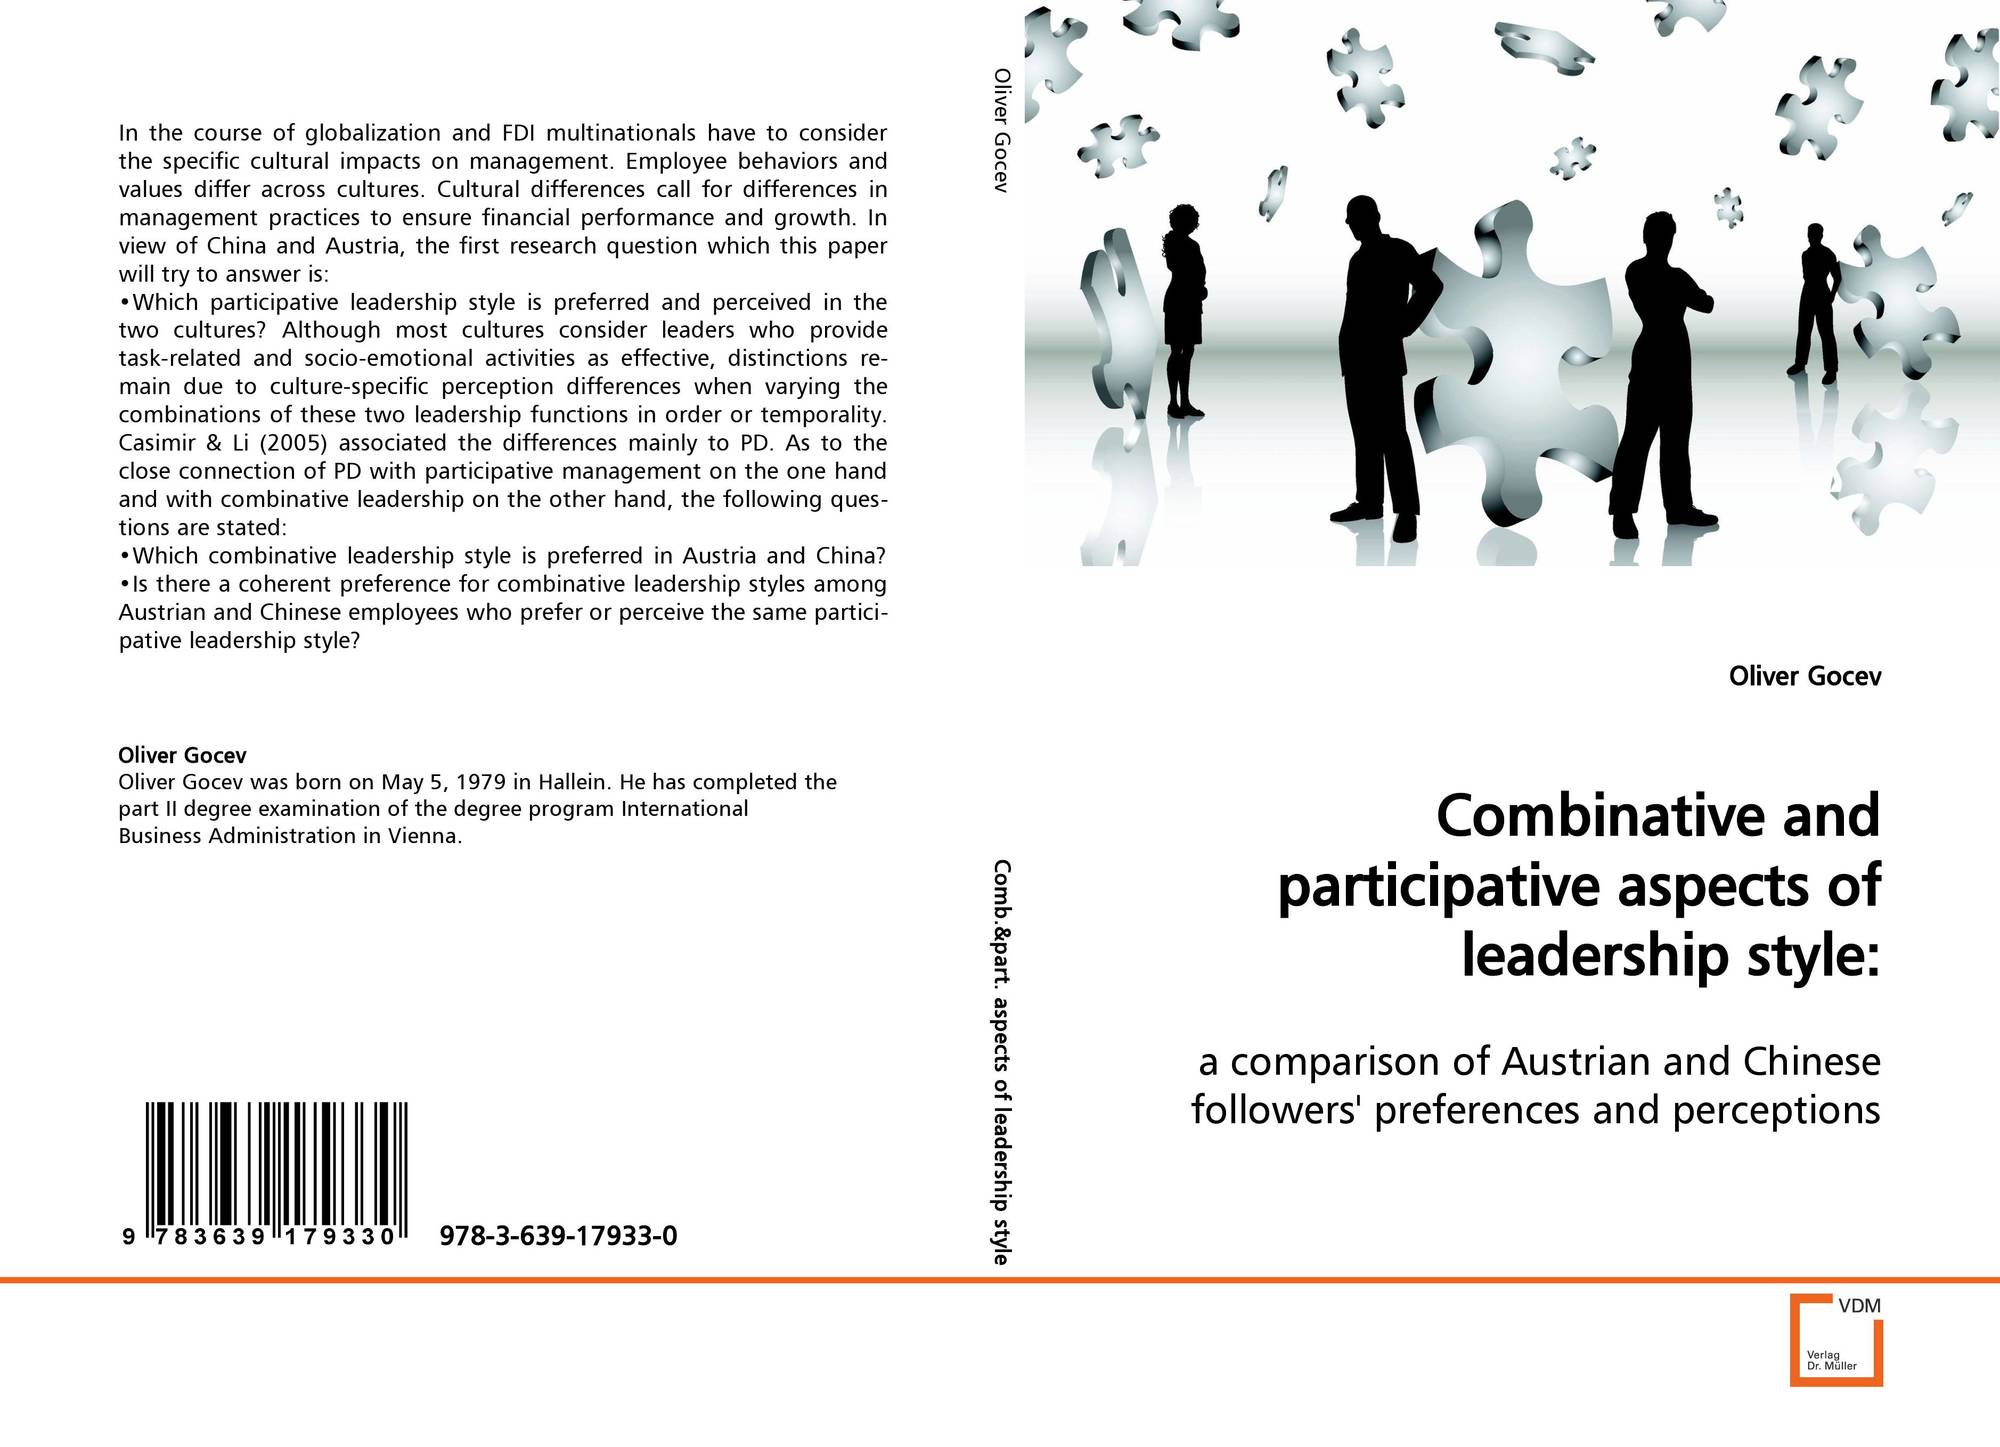 bookcover of combinative and participative aspects of leadership style